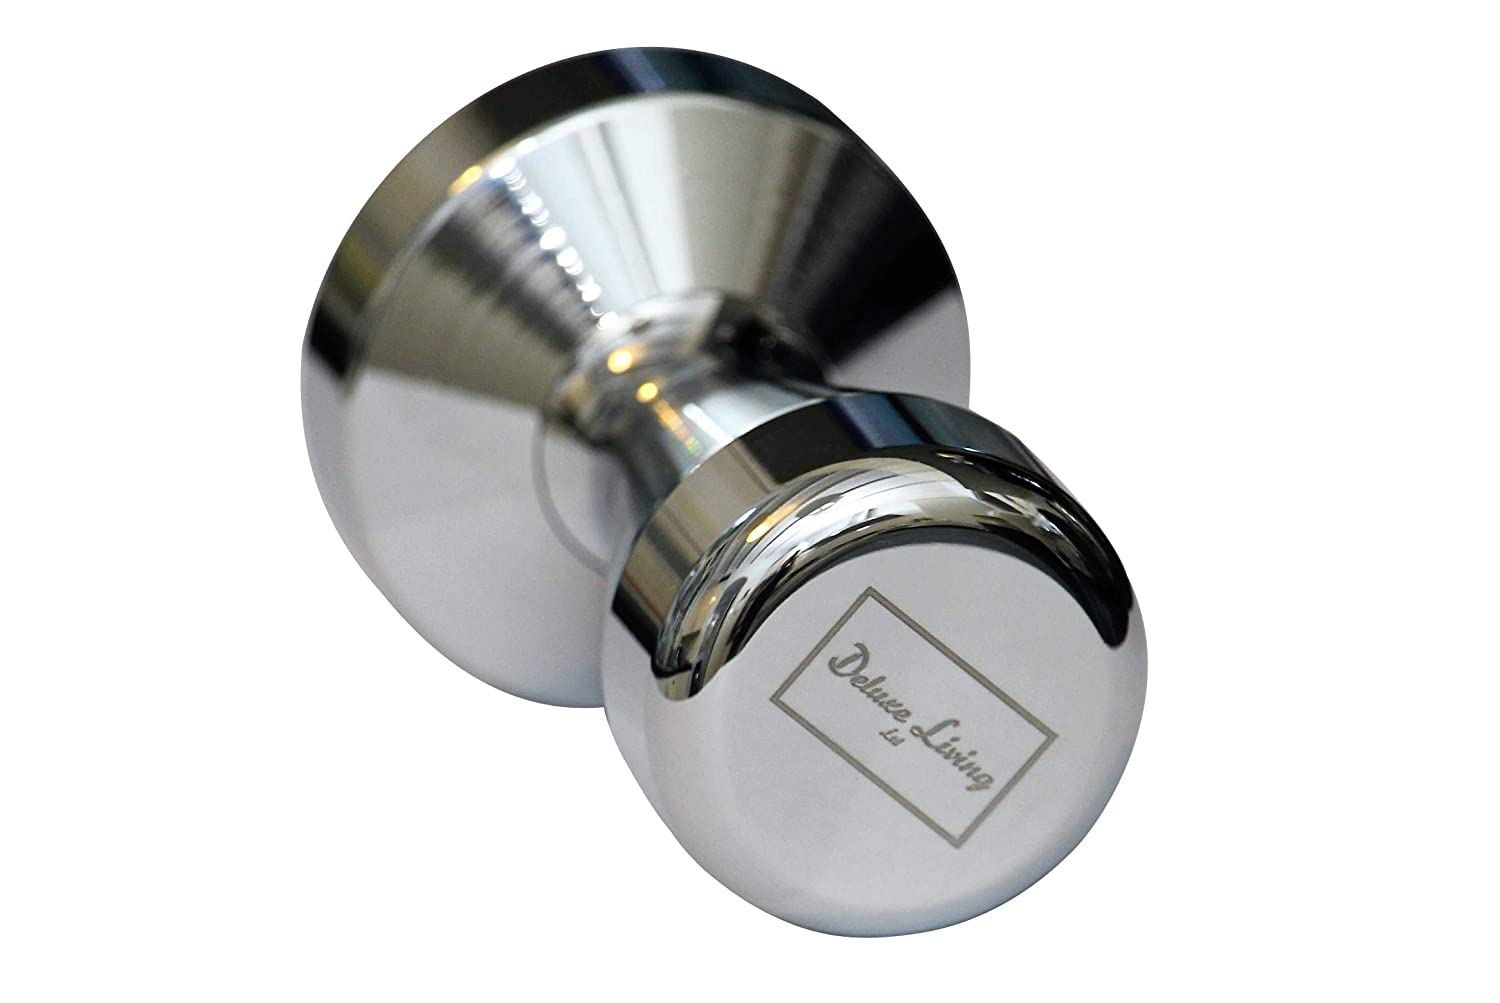 Deluxe Living Ltd - Espresso Coffee Tamper (51mm) - Chrome Plated Solid Stainless Steel Tamper for Coffee and Espresso, Tamping, Barista, Silver Colour